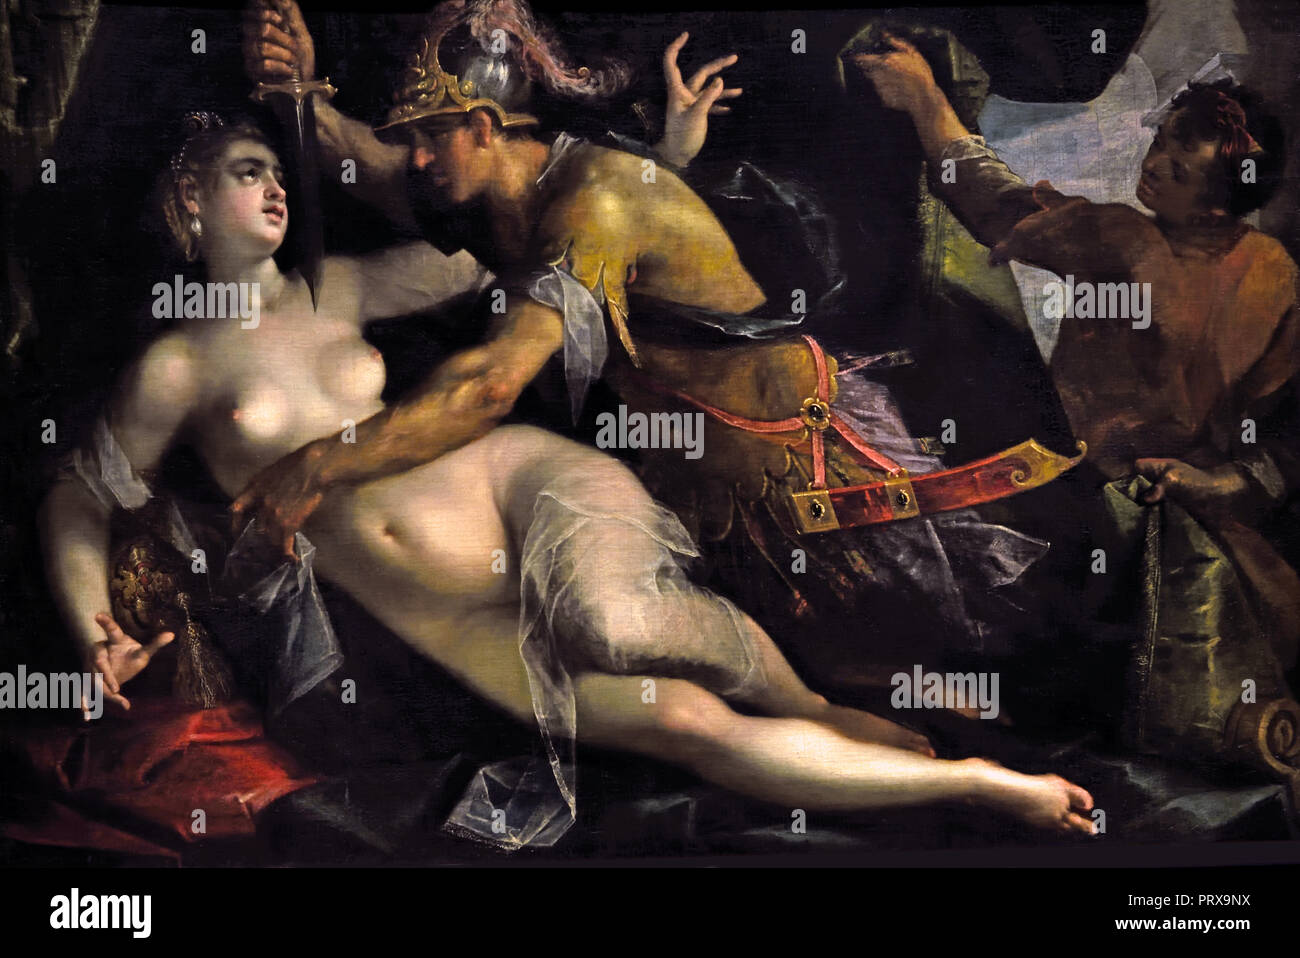 Tarquinius and Lucretia 1600 Hans von Aachen 1552-1615 German Germany ( Sextus Tarquinius, son of the Etruscan King of Rome, forced the Roman matron to submit to his advances by threatening to kill her , Lucretia told her family of this outrage and took her own life.  ) - Stock Image